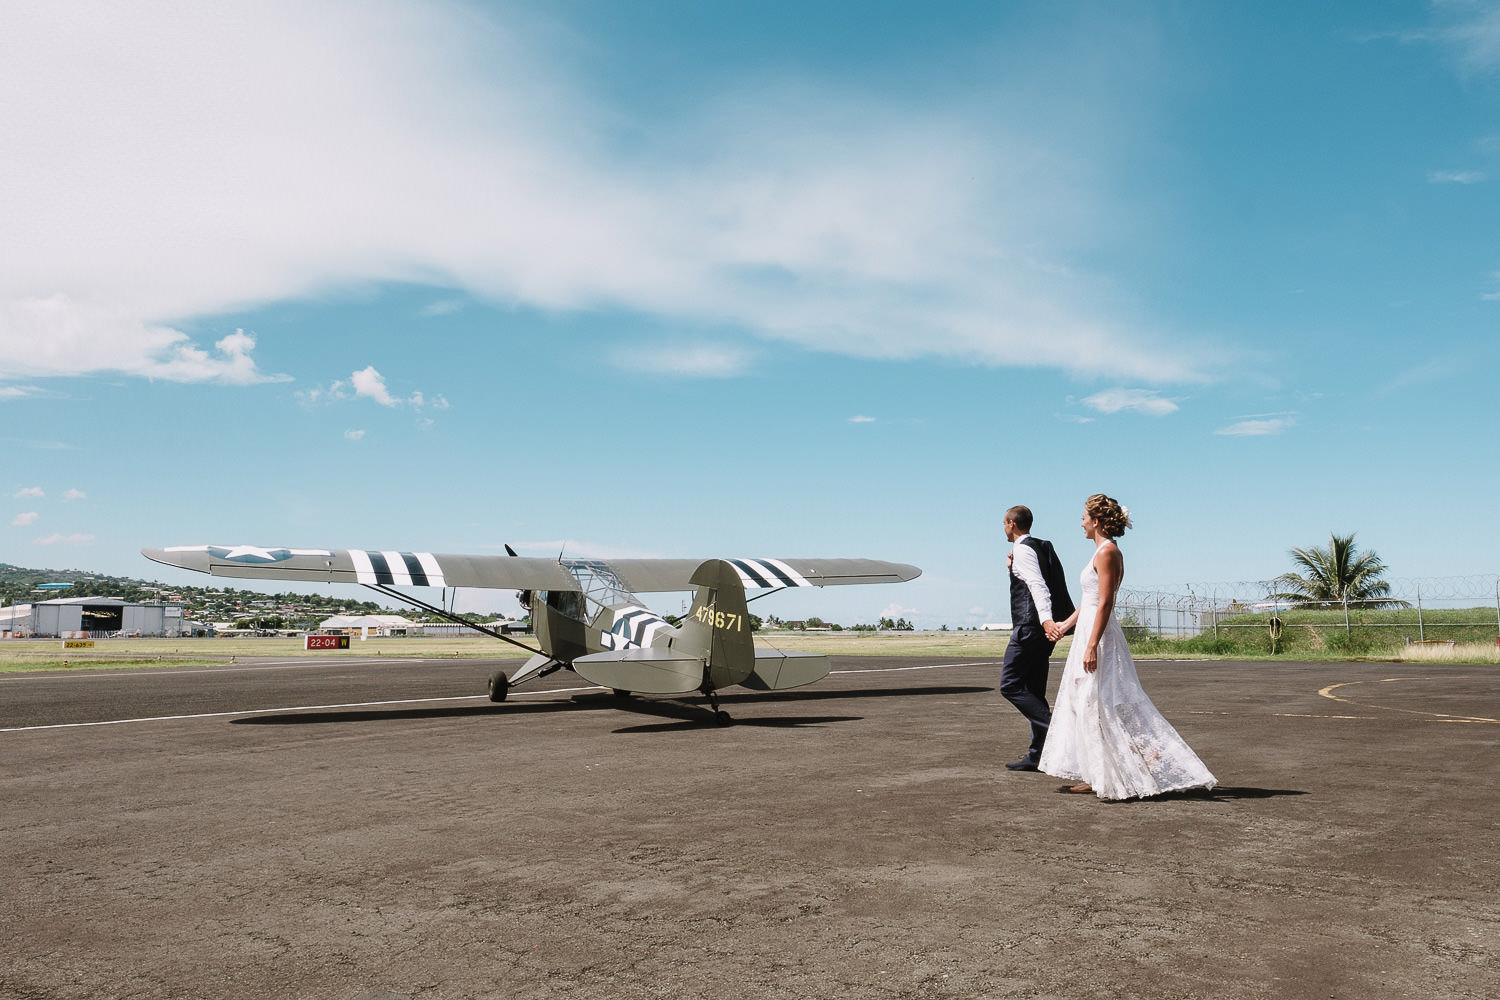 Bride and grrom walking out on to runway with antique plane in t